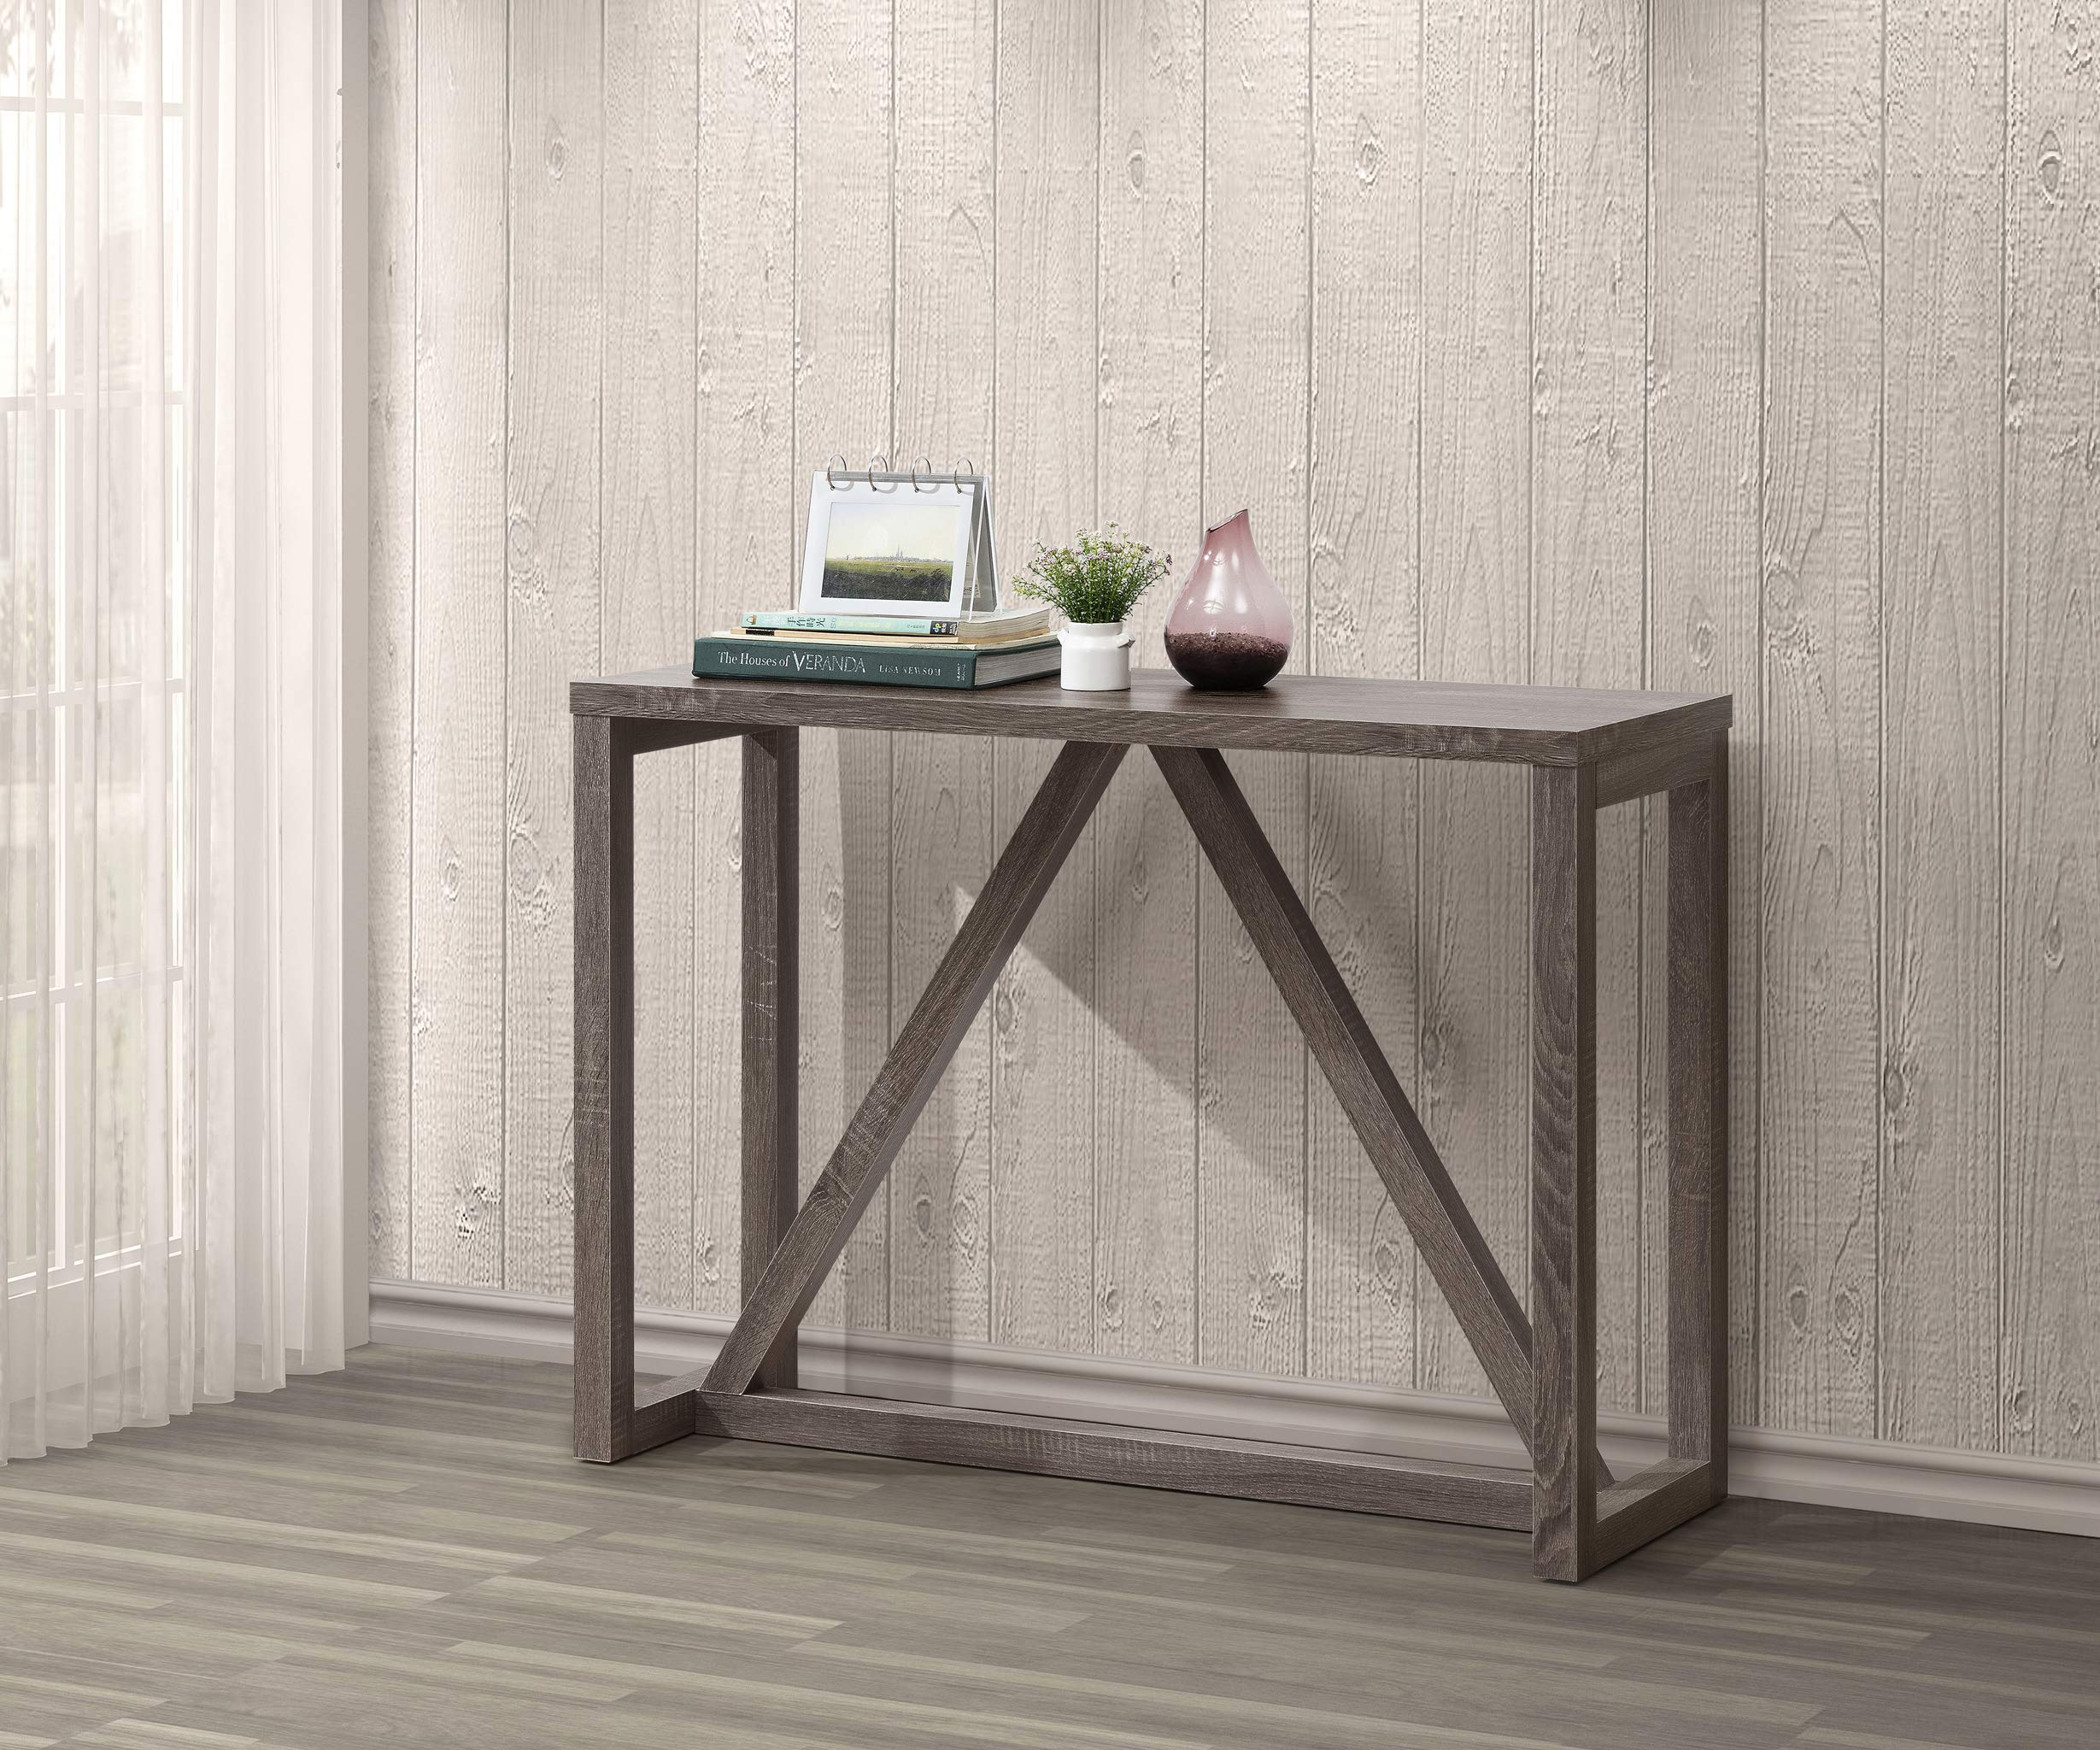 Weathered Grey Finish Accent Entryway Console Sofa Table by Unknown